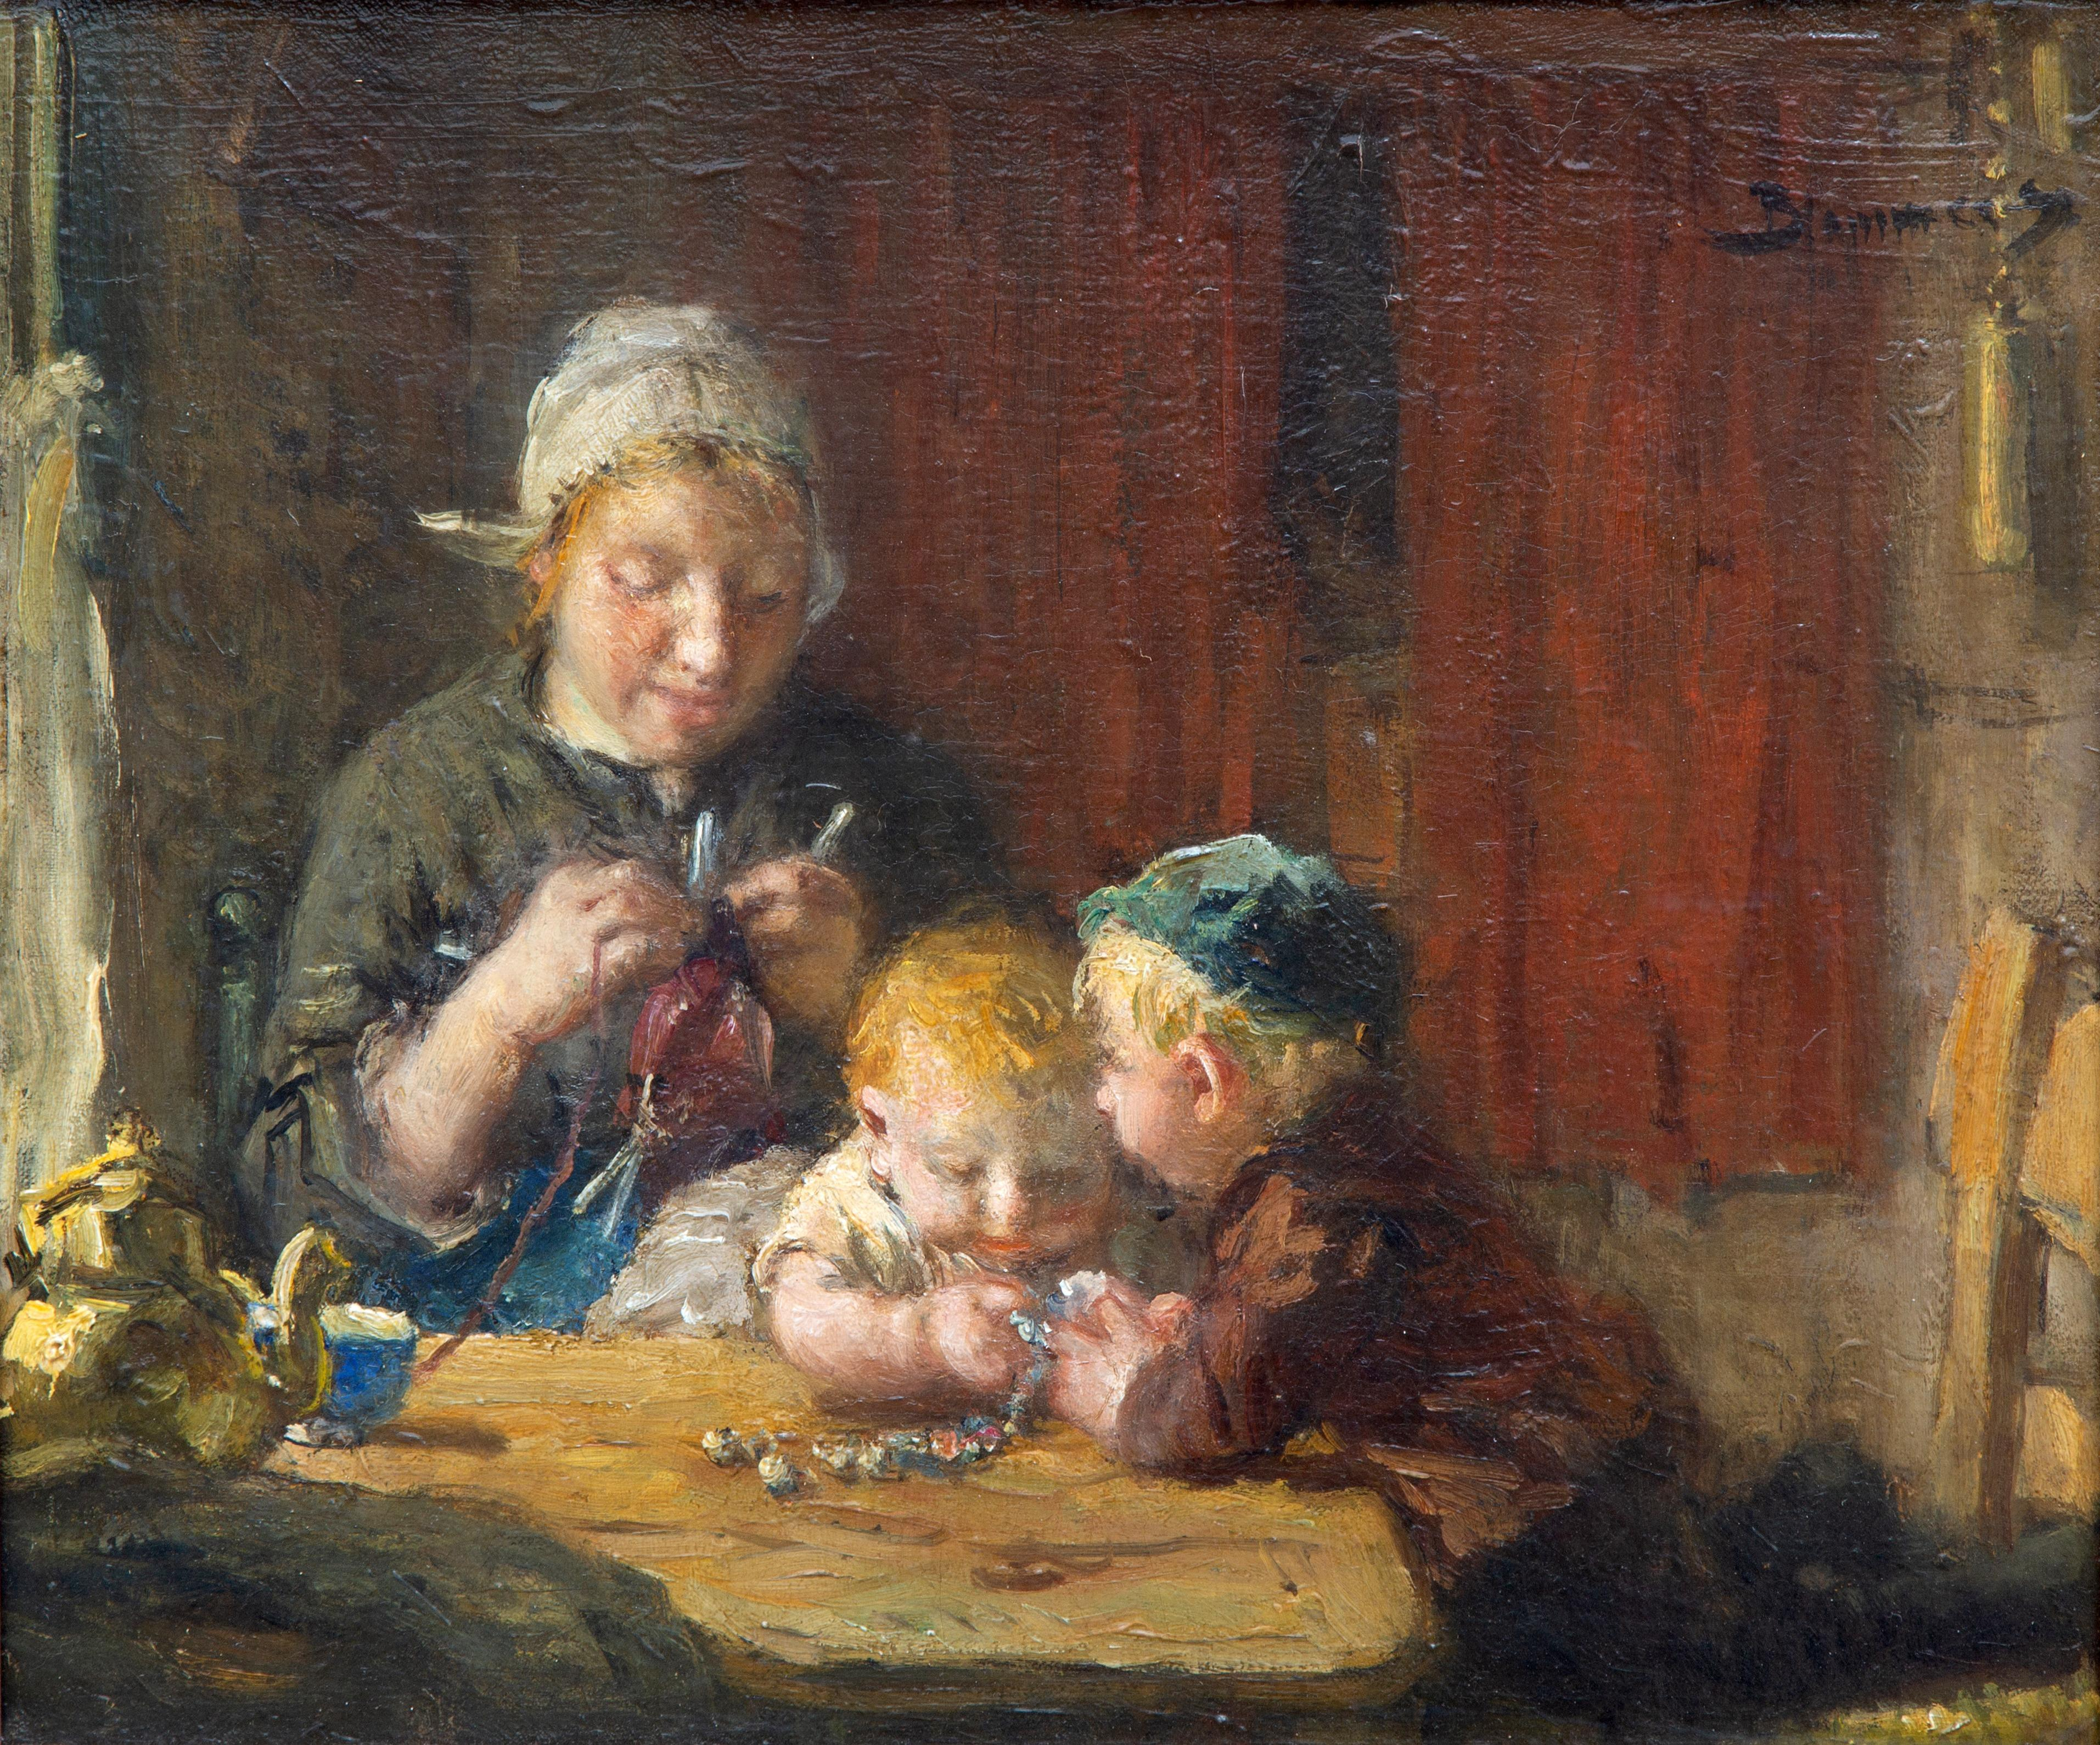 An interior with a mother knitting and children playing